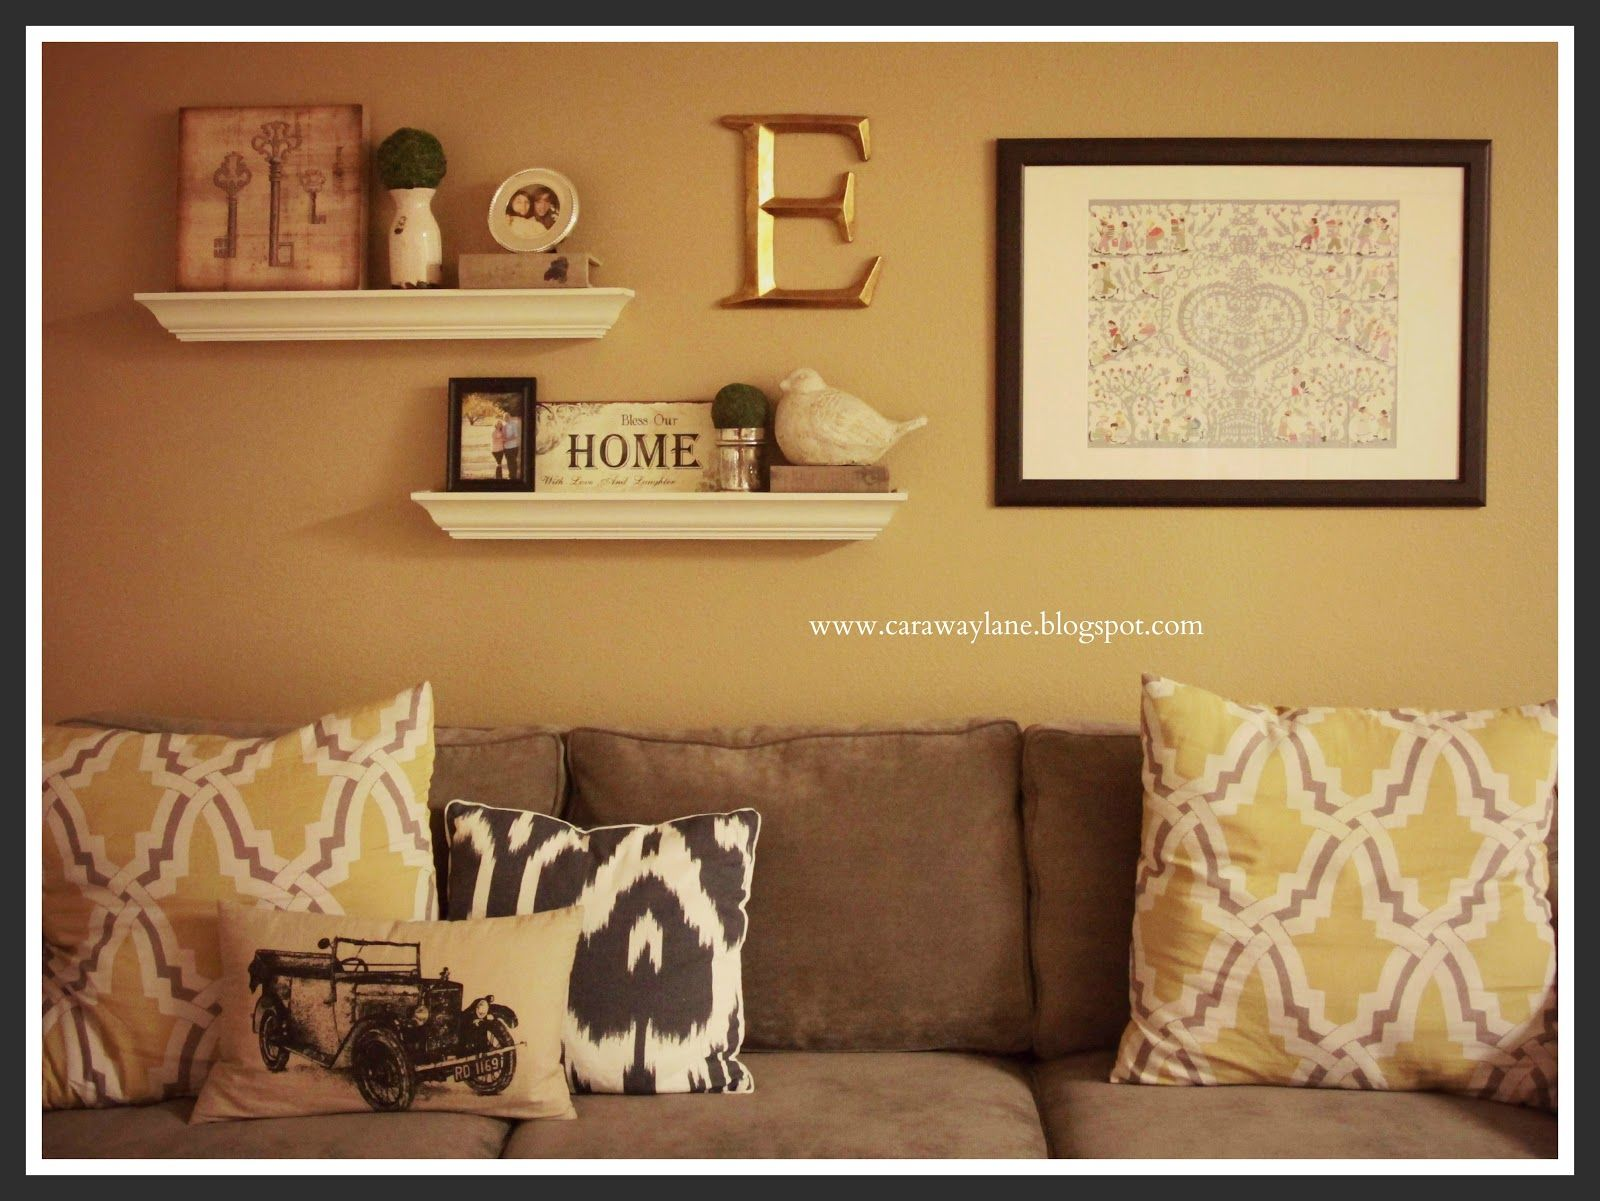 Decorate over a sofa above the couch wall decor future for Room wall decor